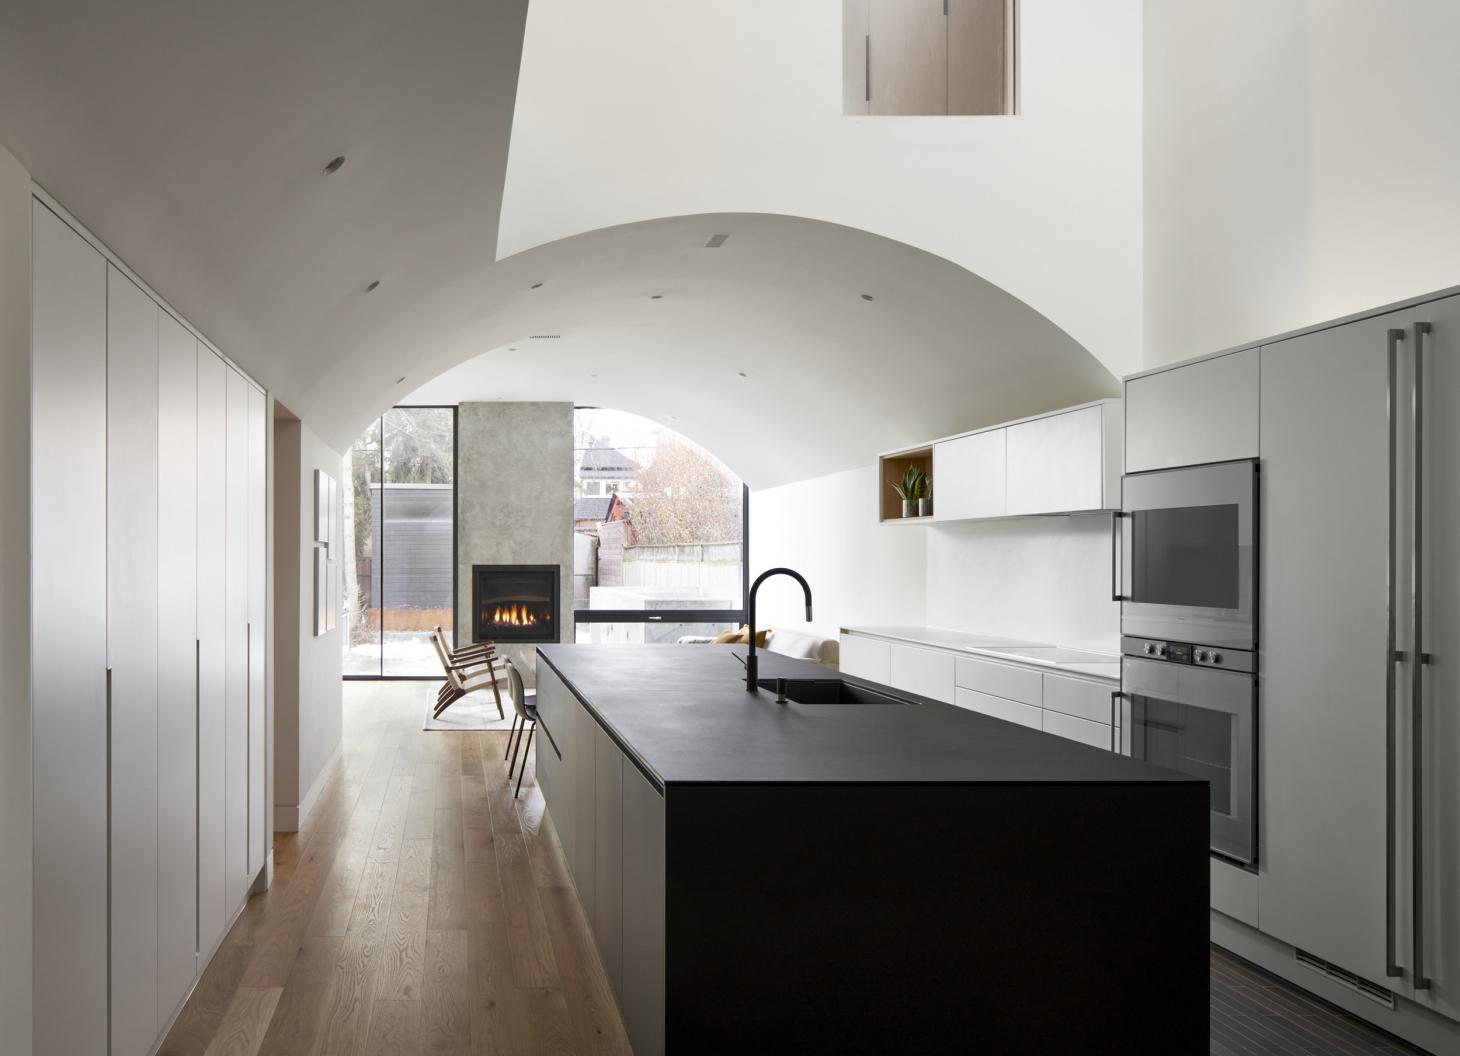 The vaulted kitchen at the High Park Residence by Batay-Csorba Architects